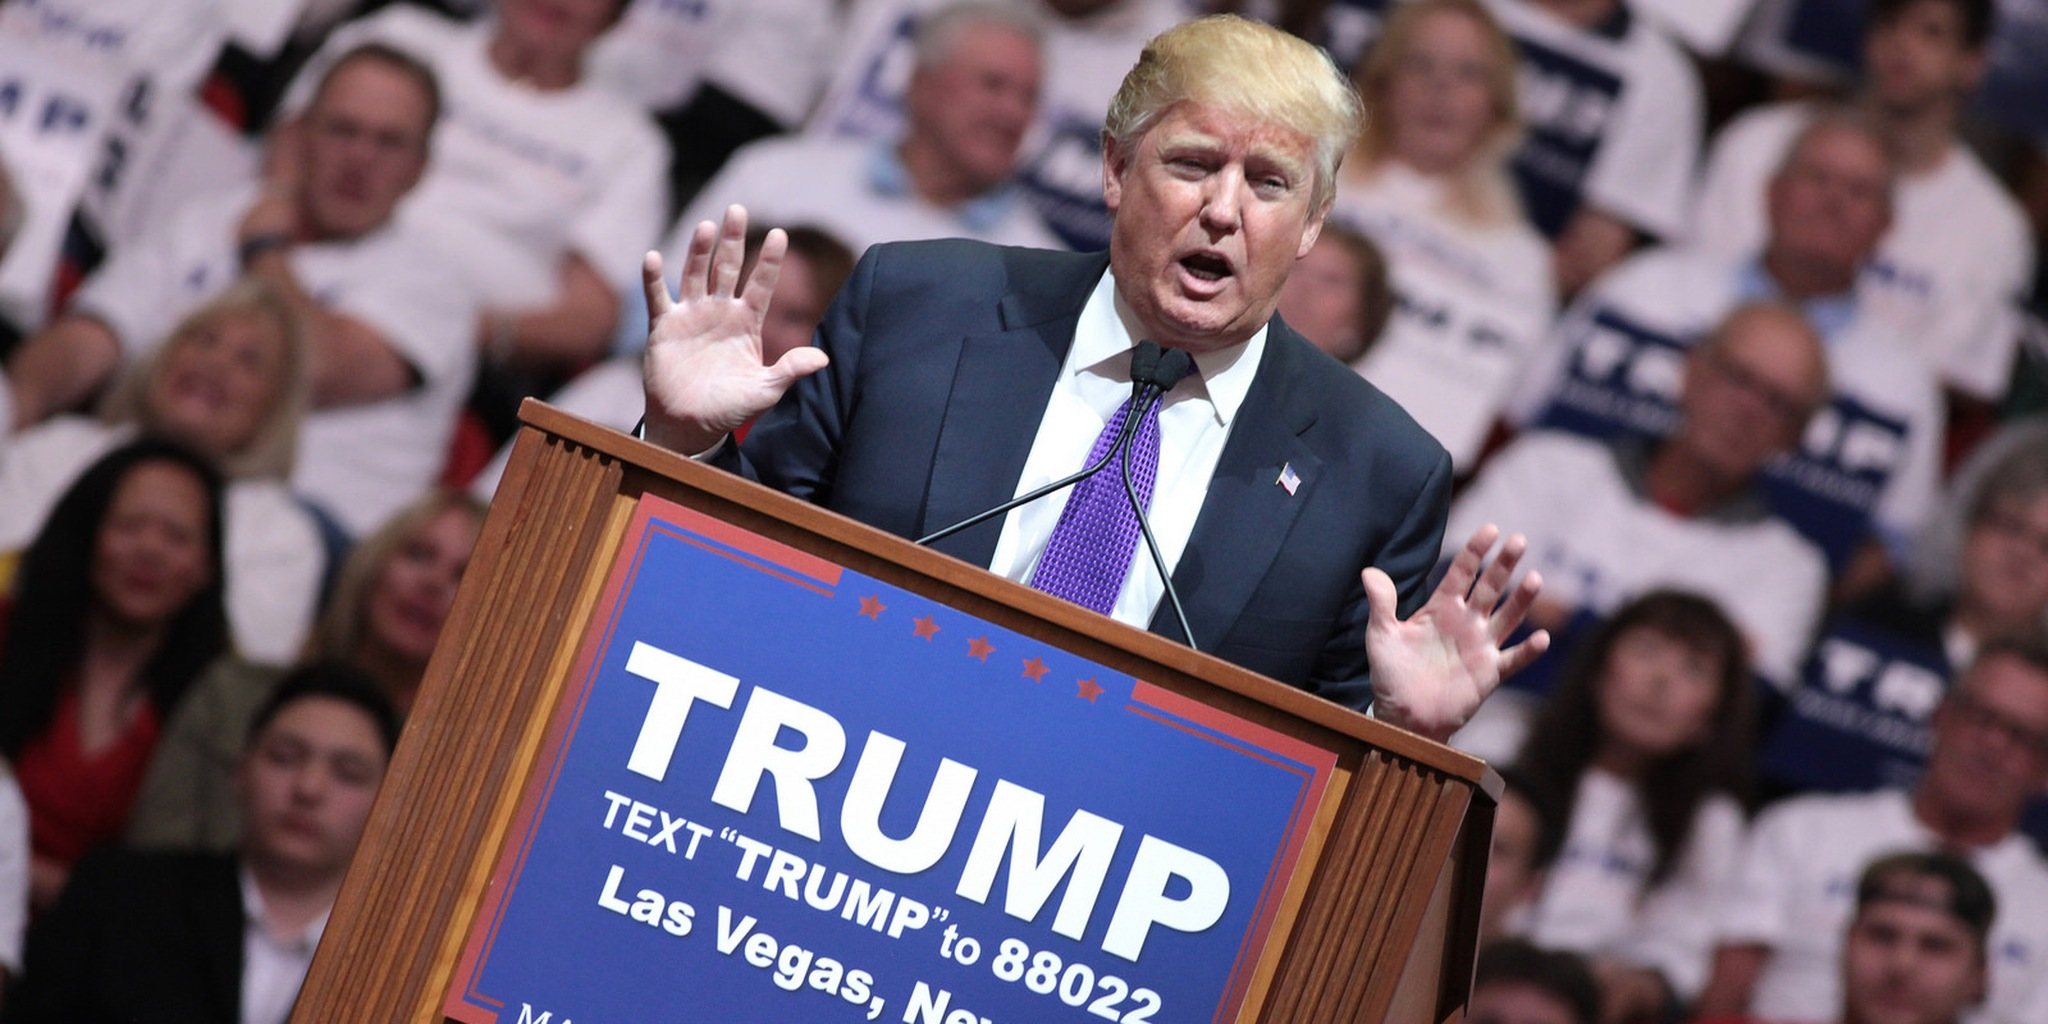 Donald Trump with hands splayed at campaign event in Nevada